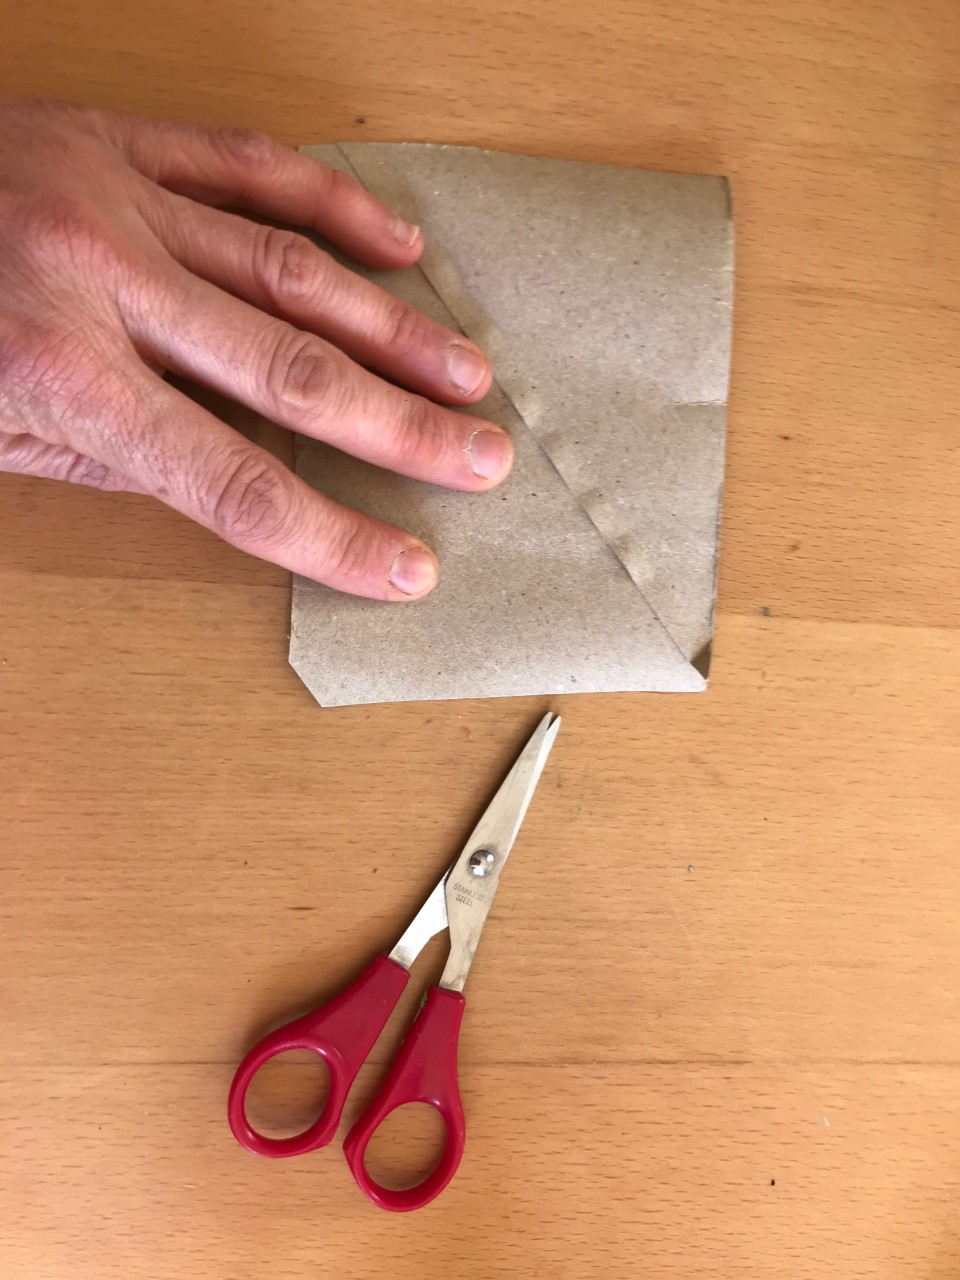 A person's hand flattens a loo roll. A pair of red scissors are placed nearby.